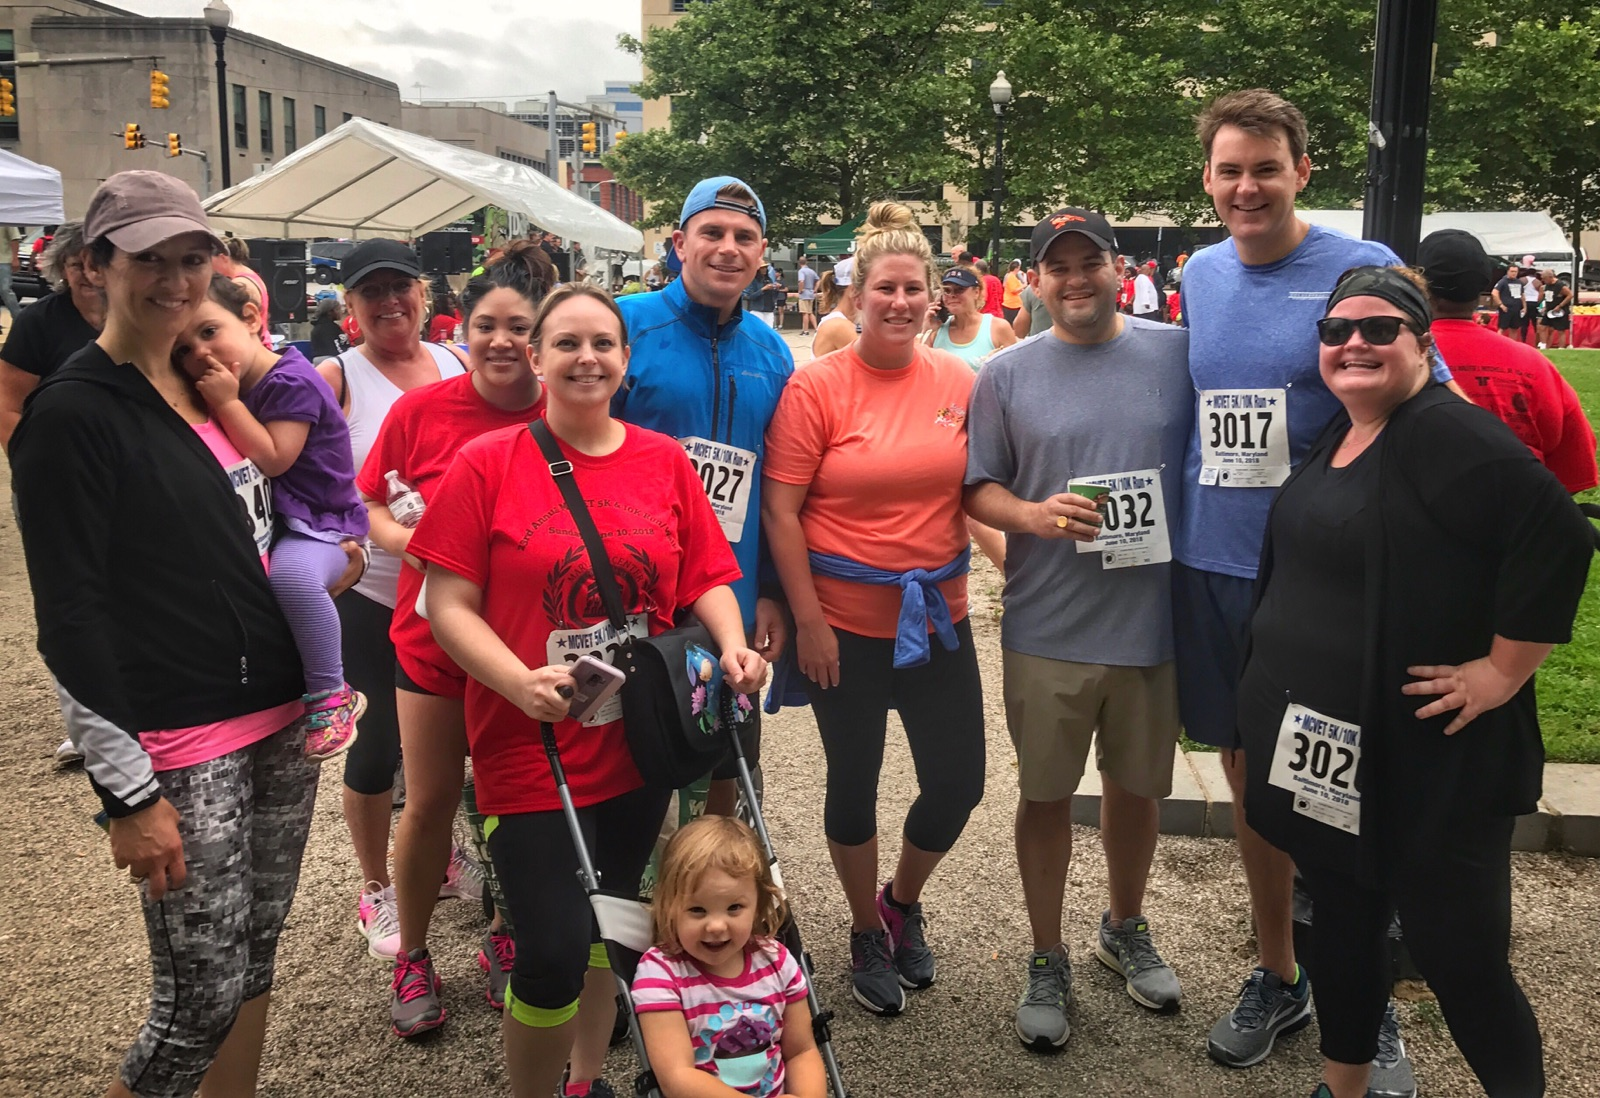 VW Brown Participates in 23rd Annual MCVET 5K/10K Runs/Walk